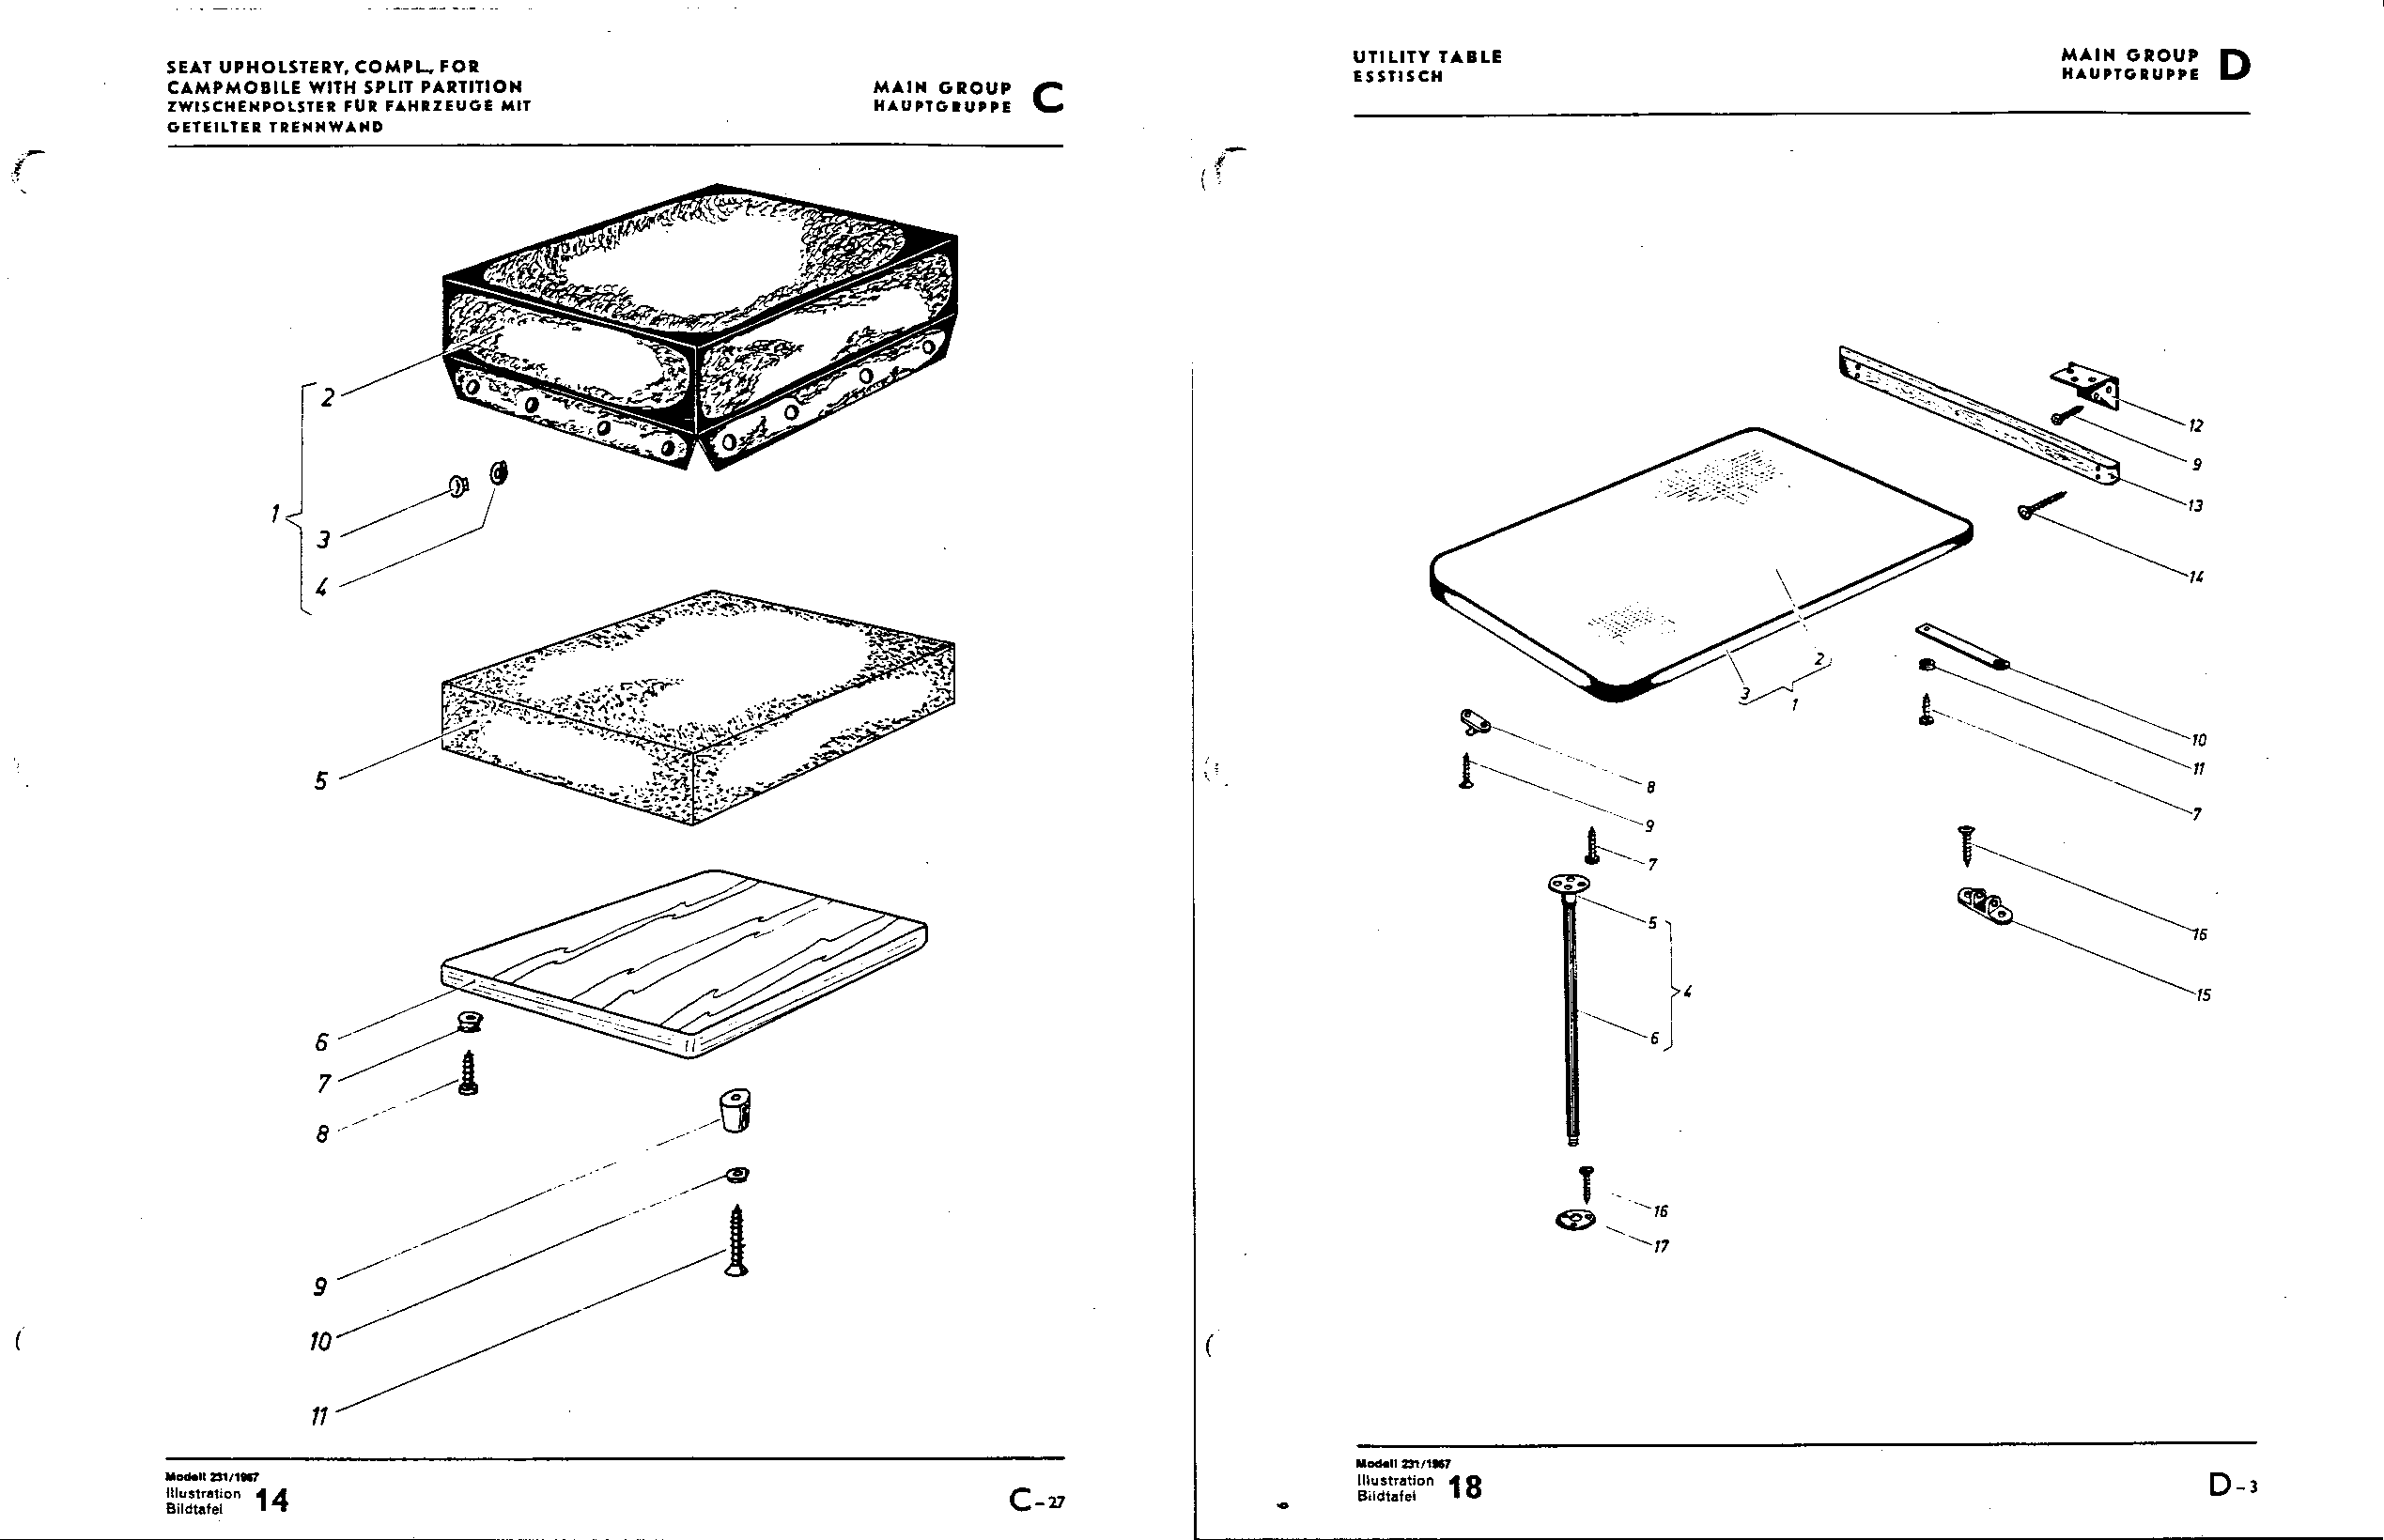 Obsolete Air Cooled Documentation Project So 42 Camper